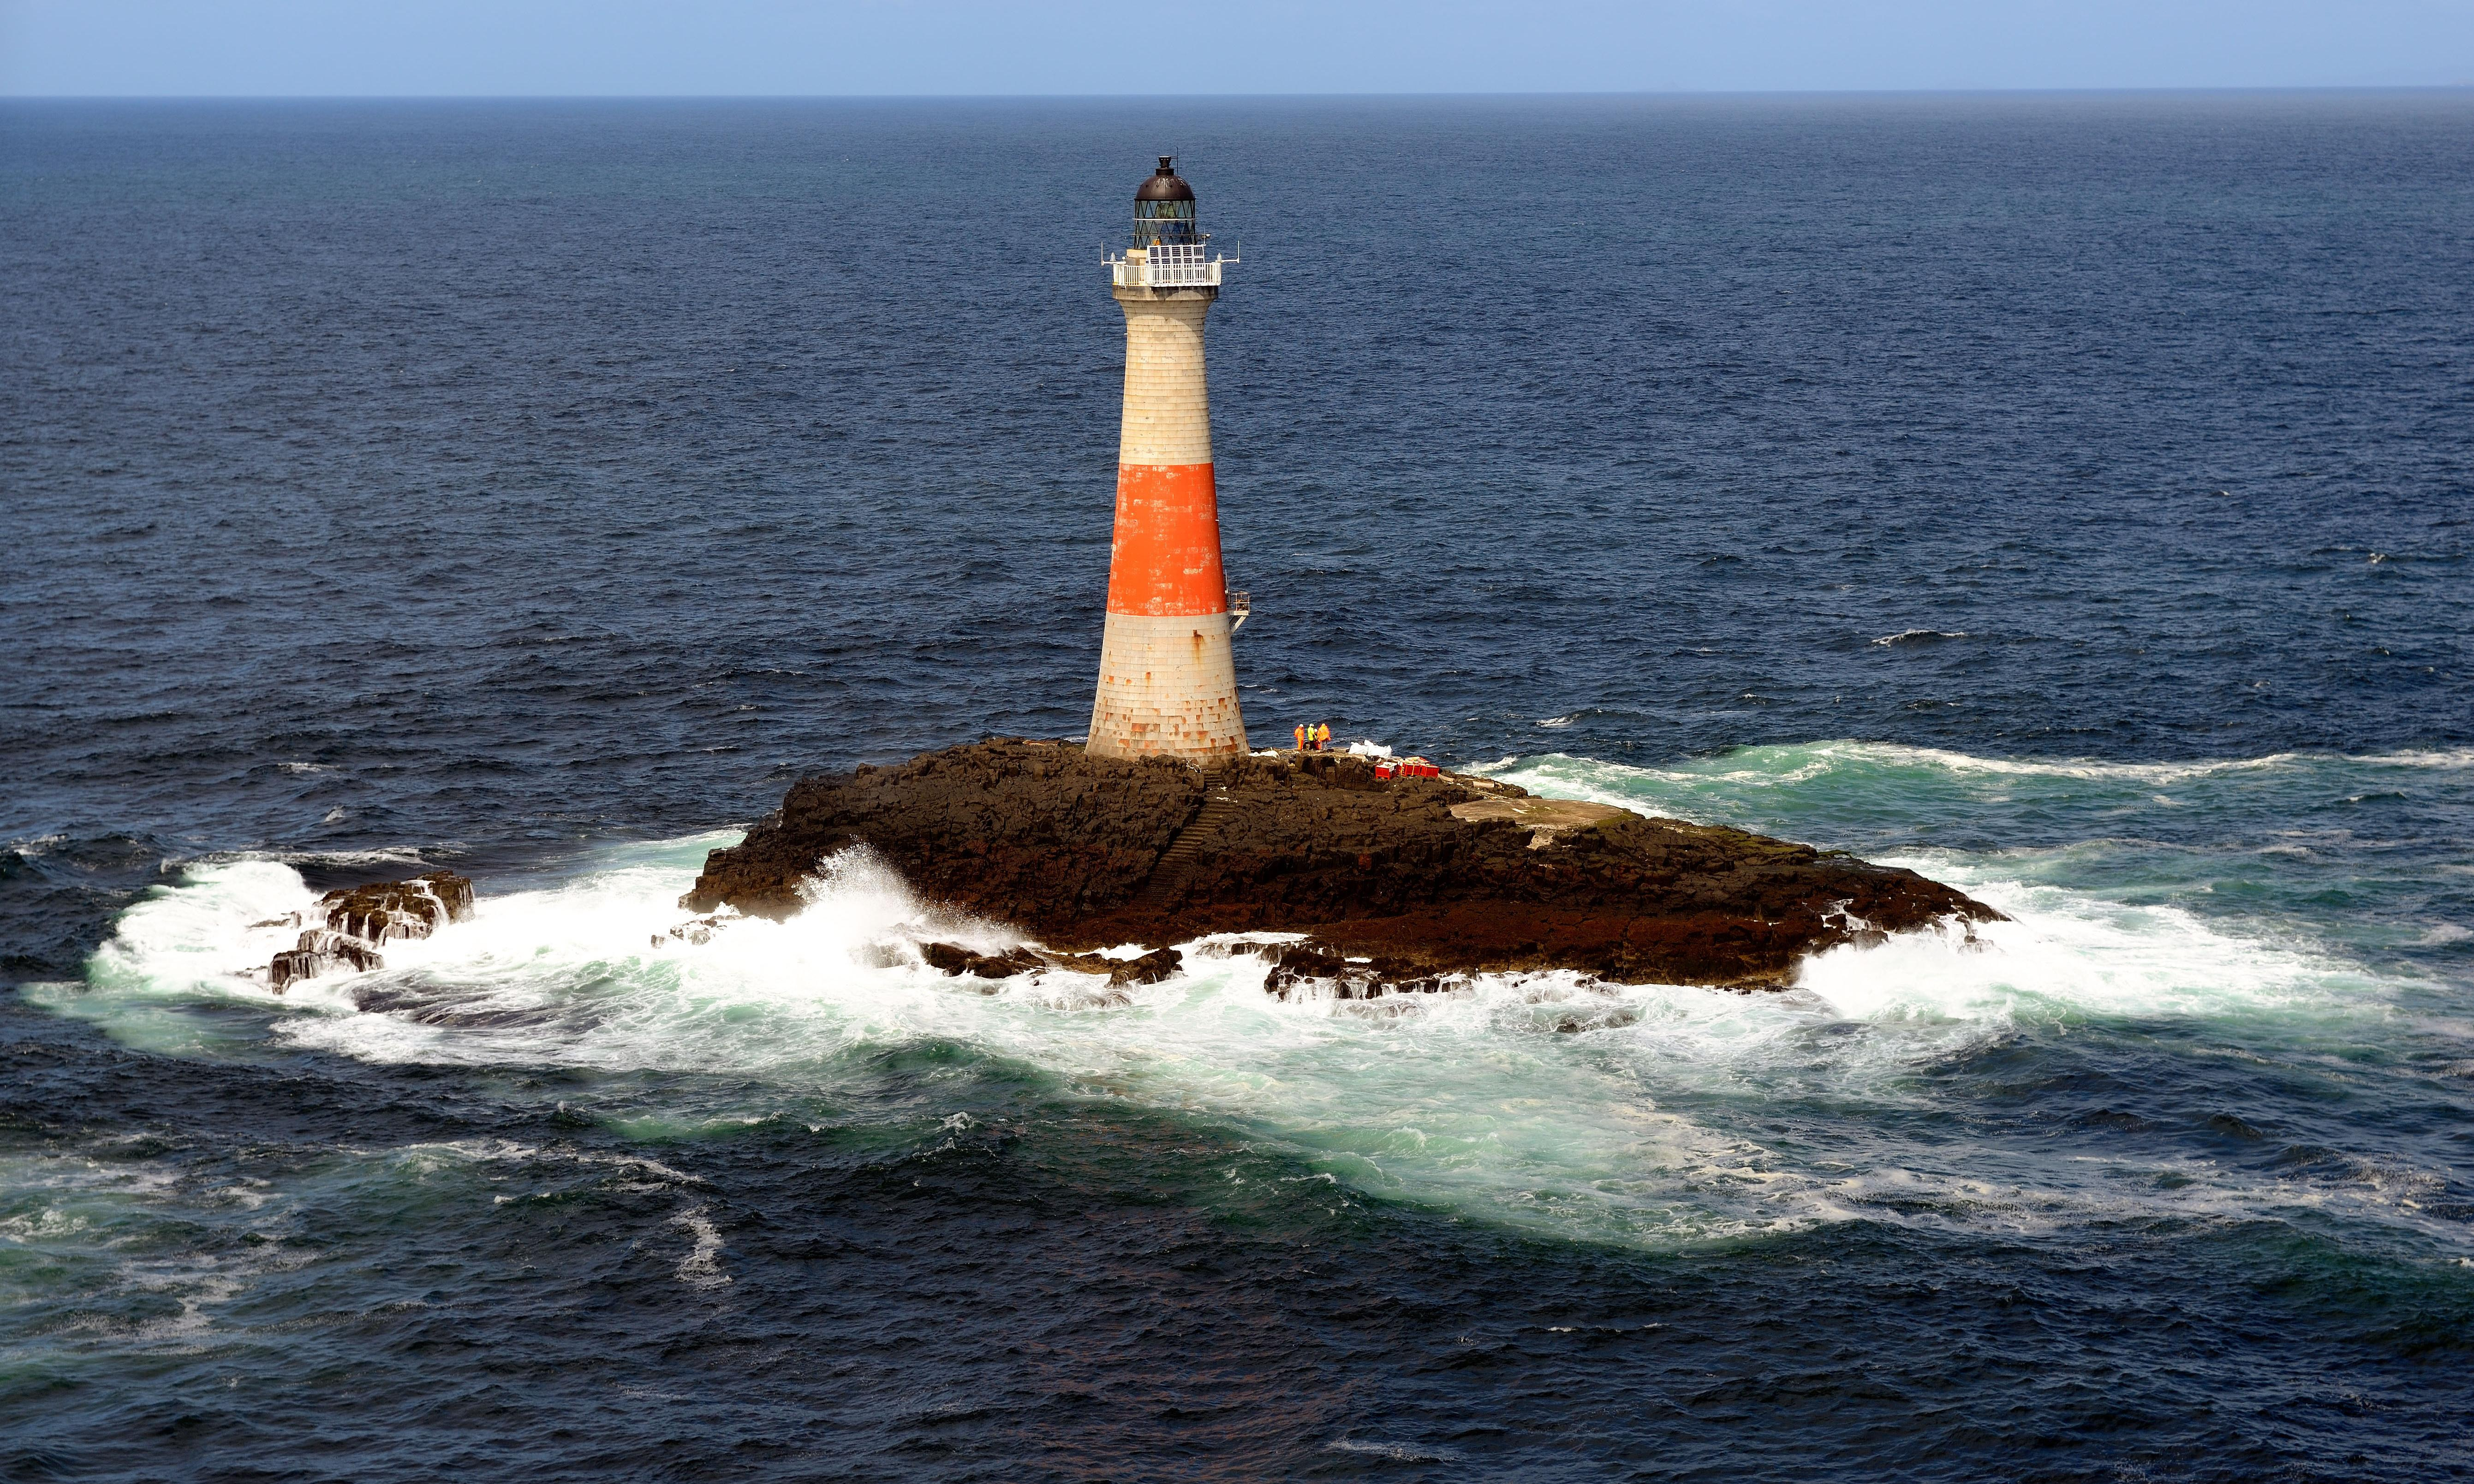 Storms and solitude: the literature of lighthouses